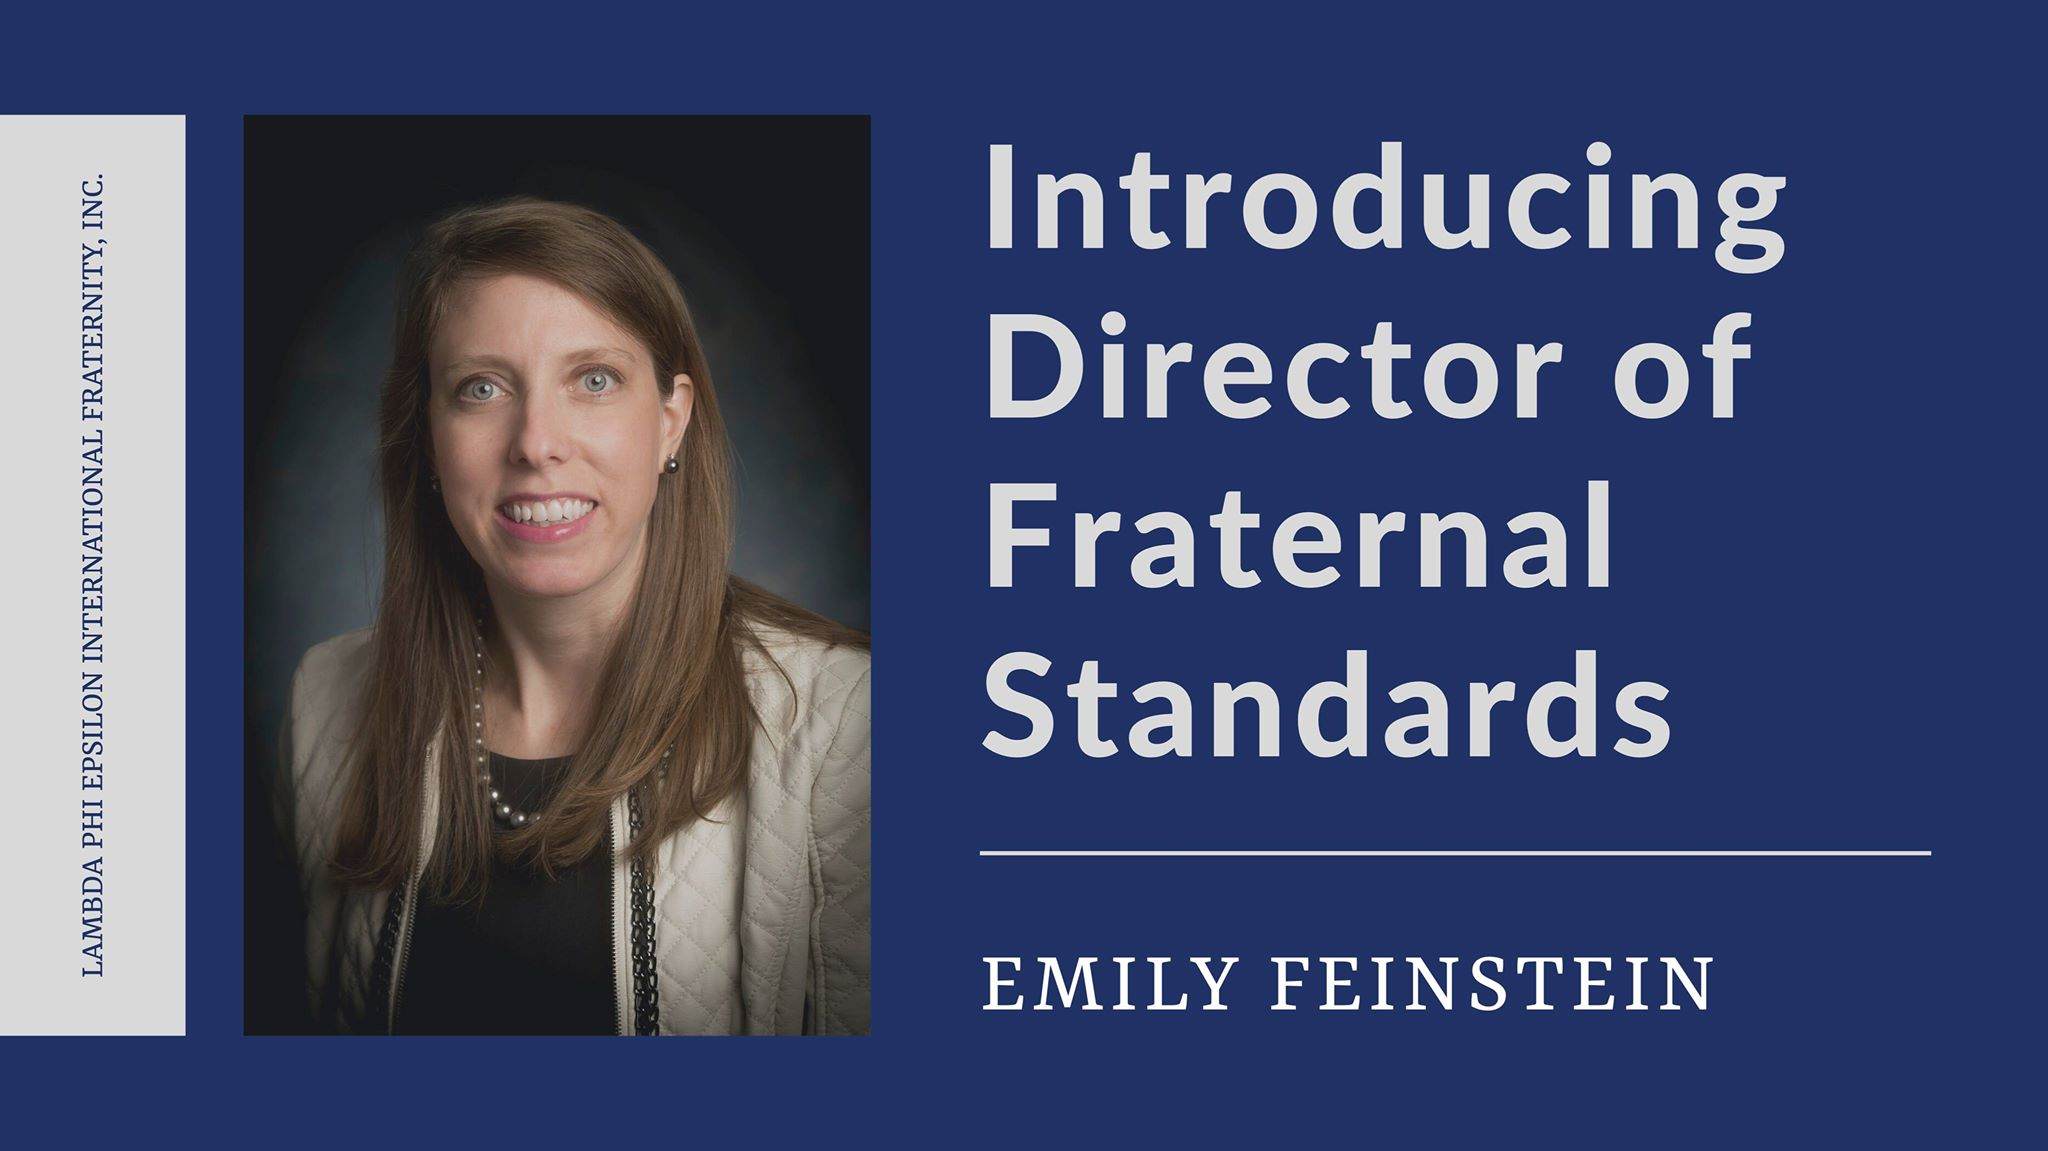 Emily Feinstein hired as Director of Fraternal Standards